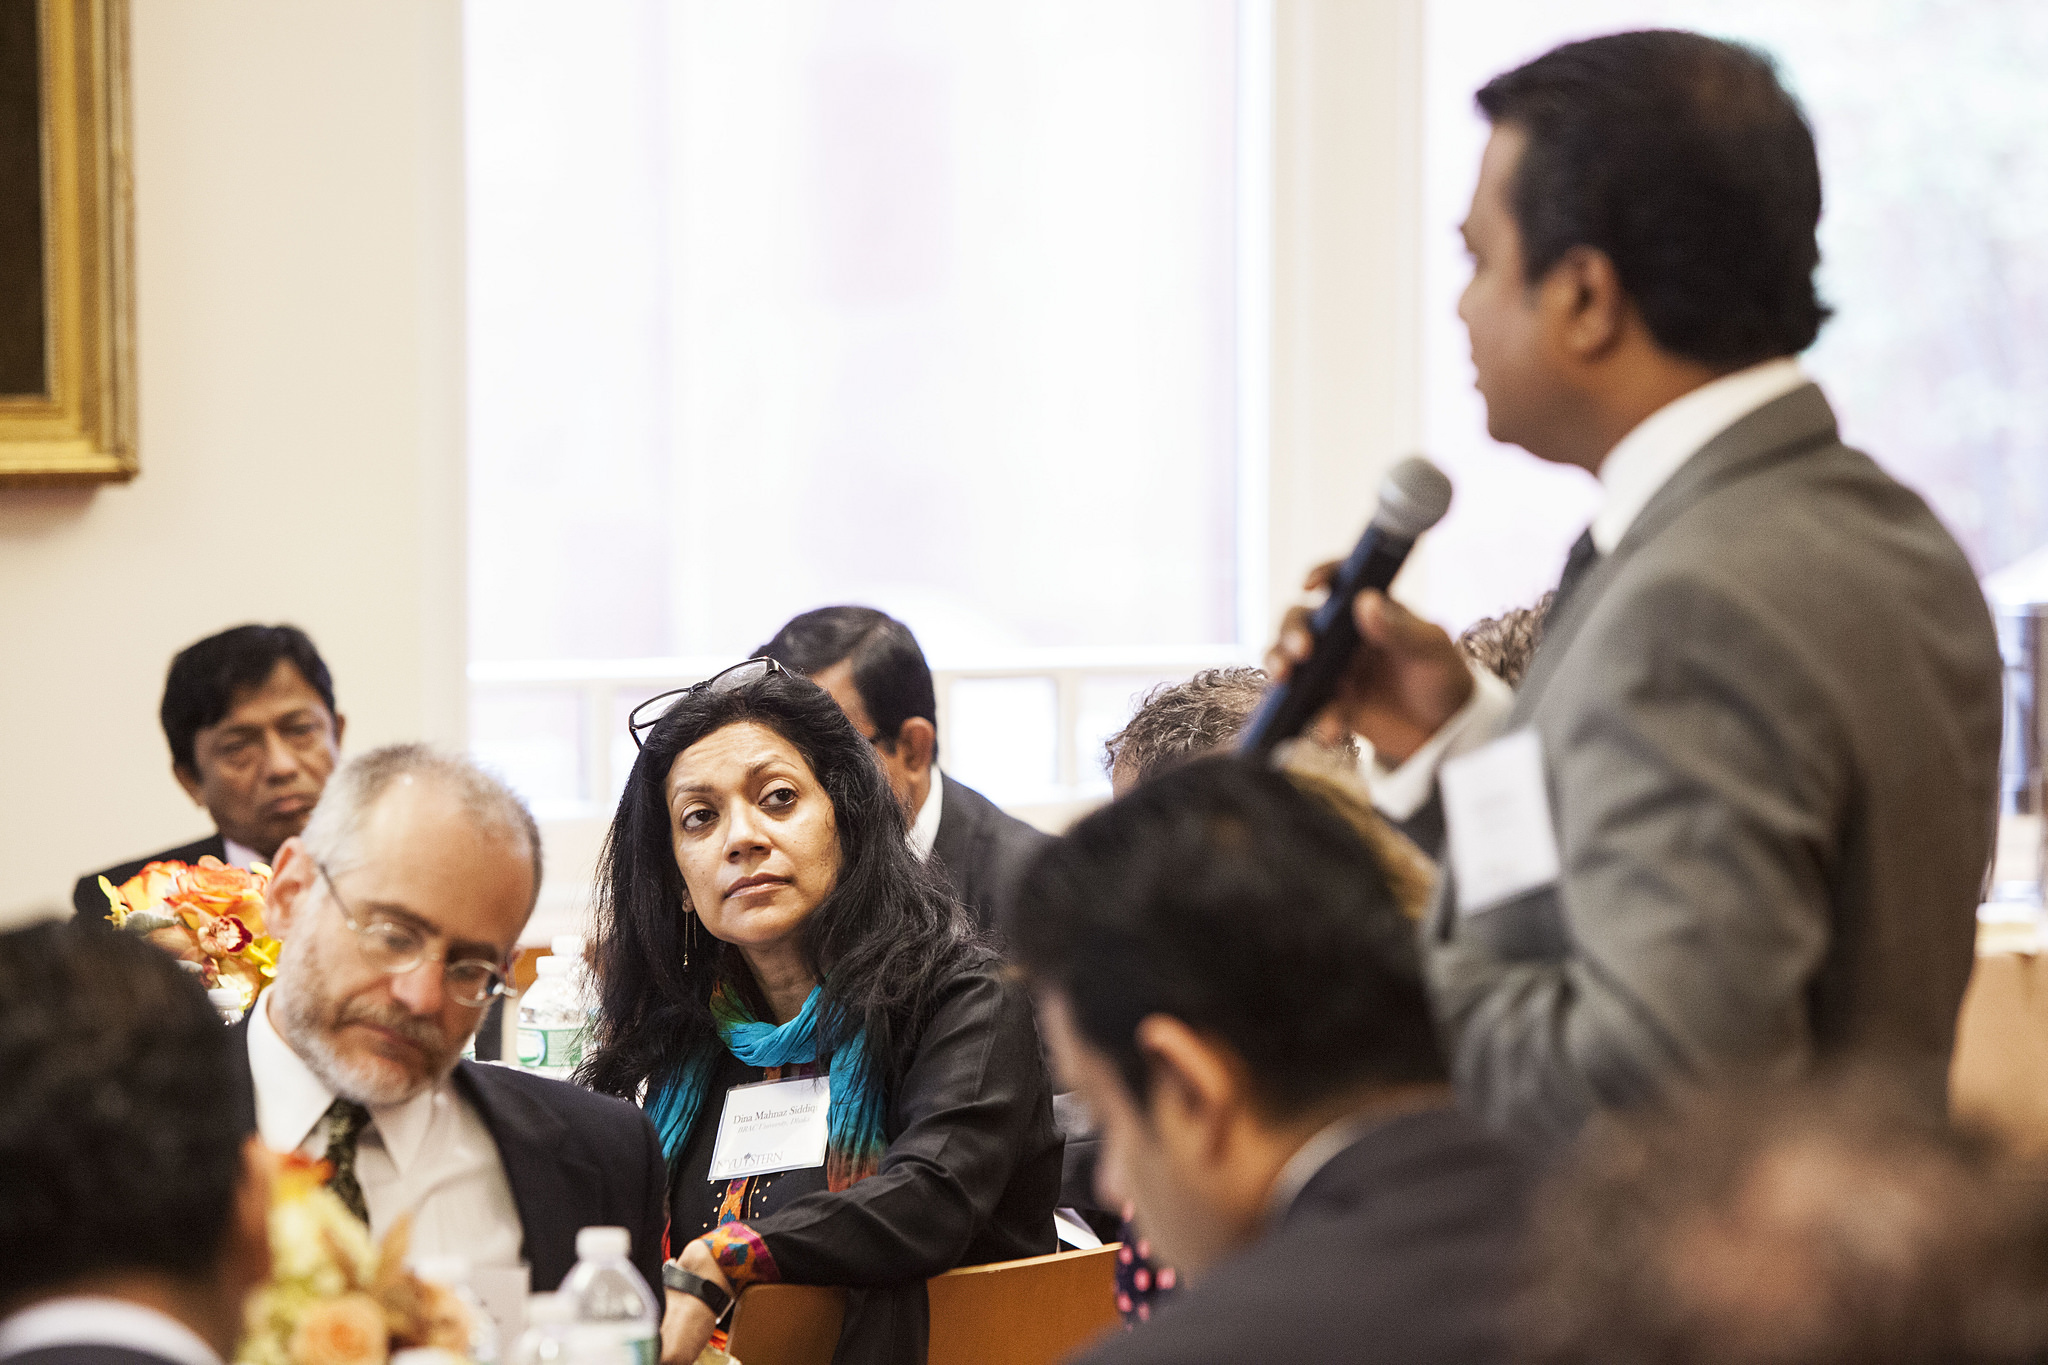 Factory owners, government representatives, brands, and civil society organizations debating the future of the garment sector in Bangladesh at the Center's September 2013 convening in New York.